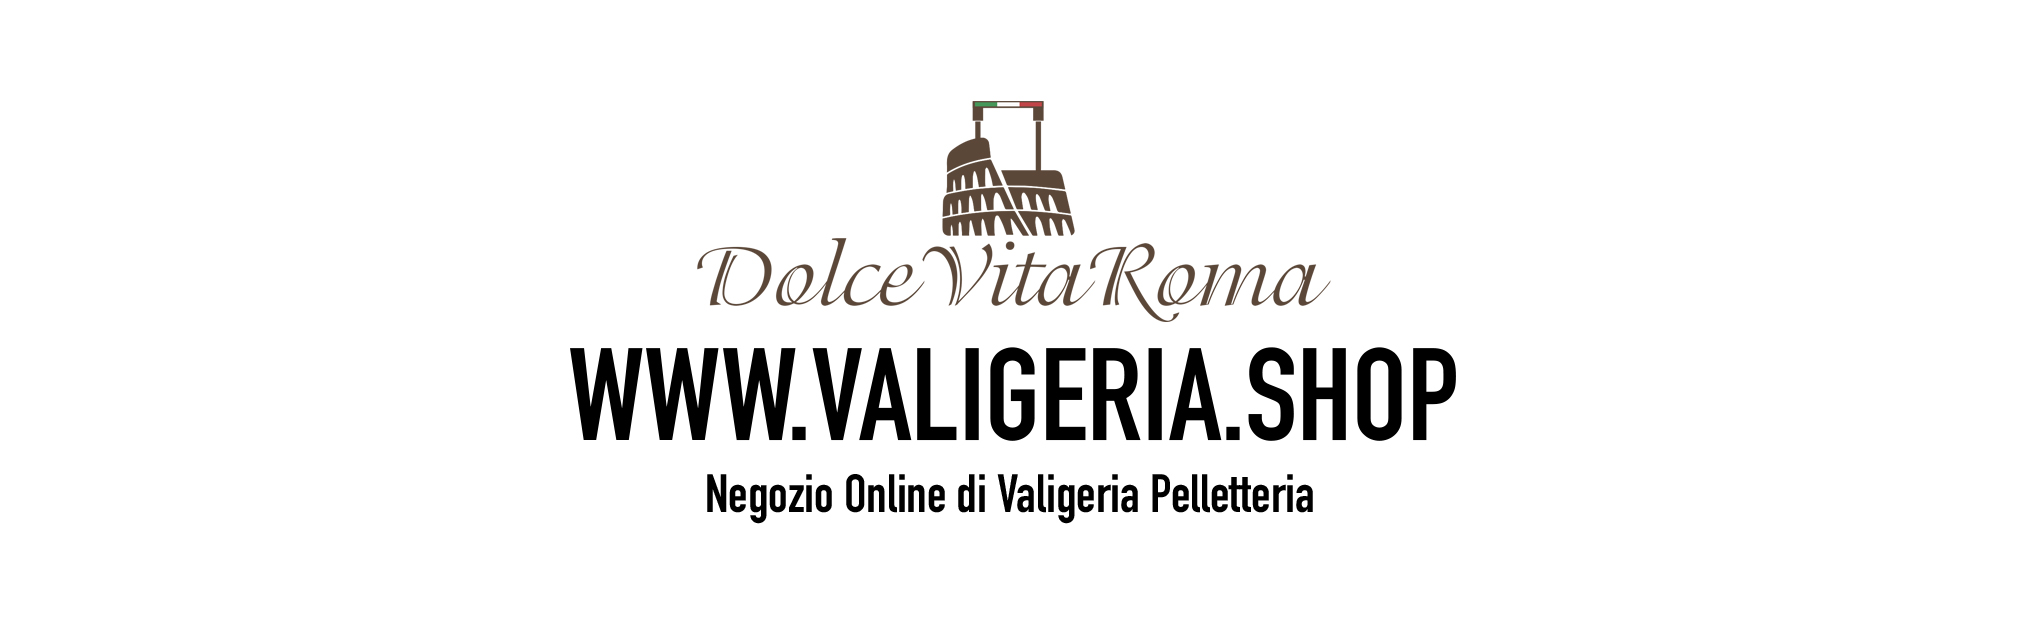 valigeria.shop